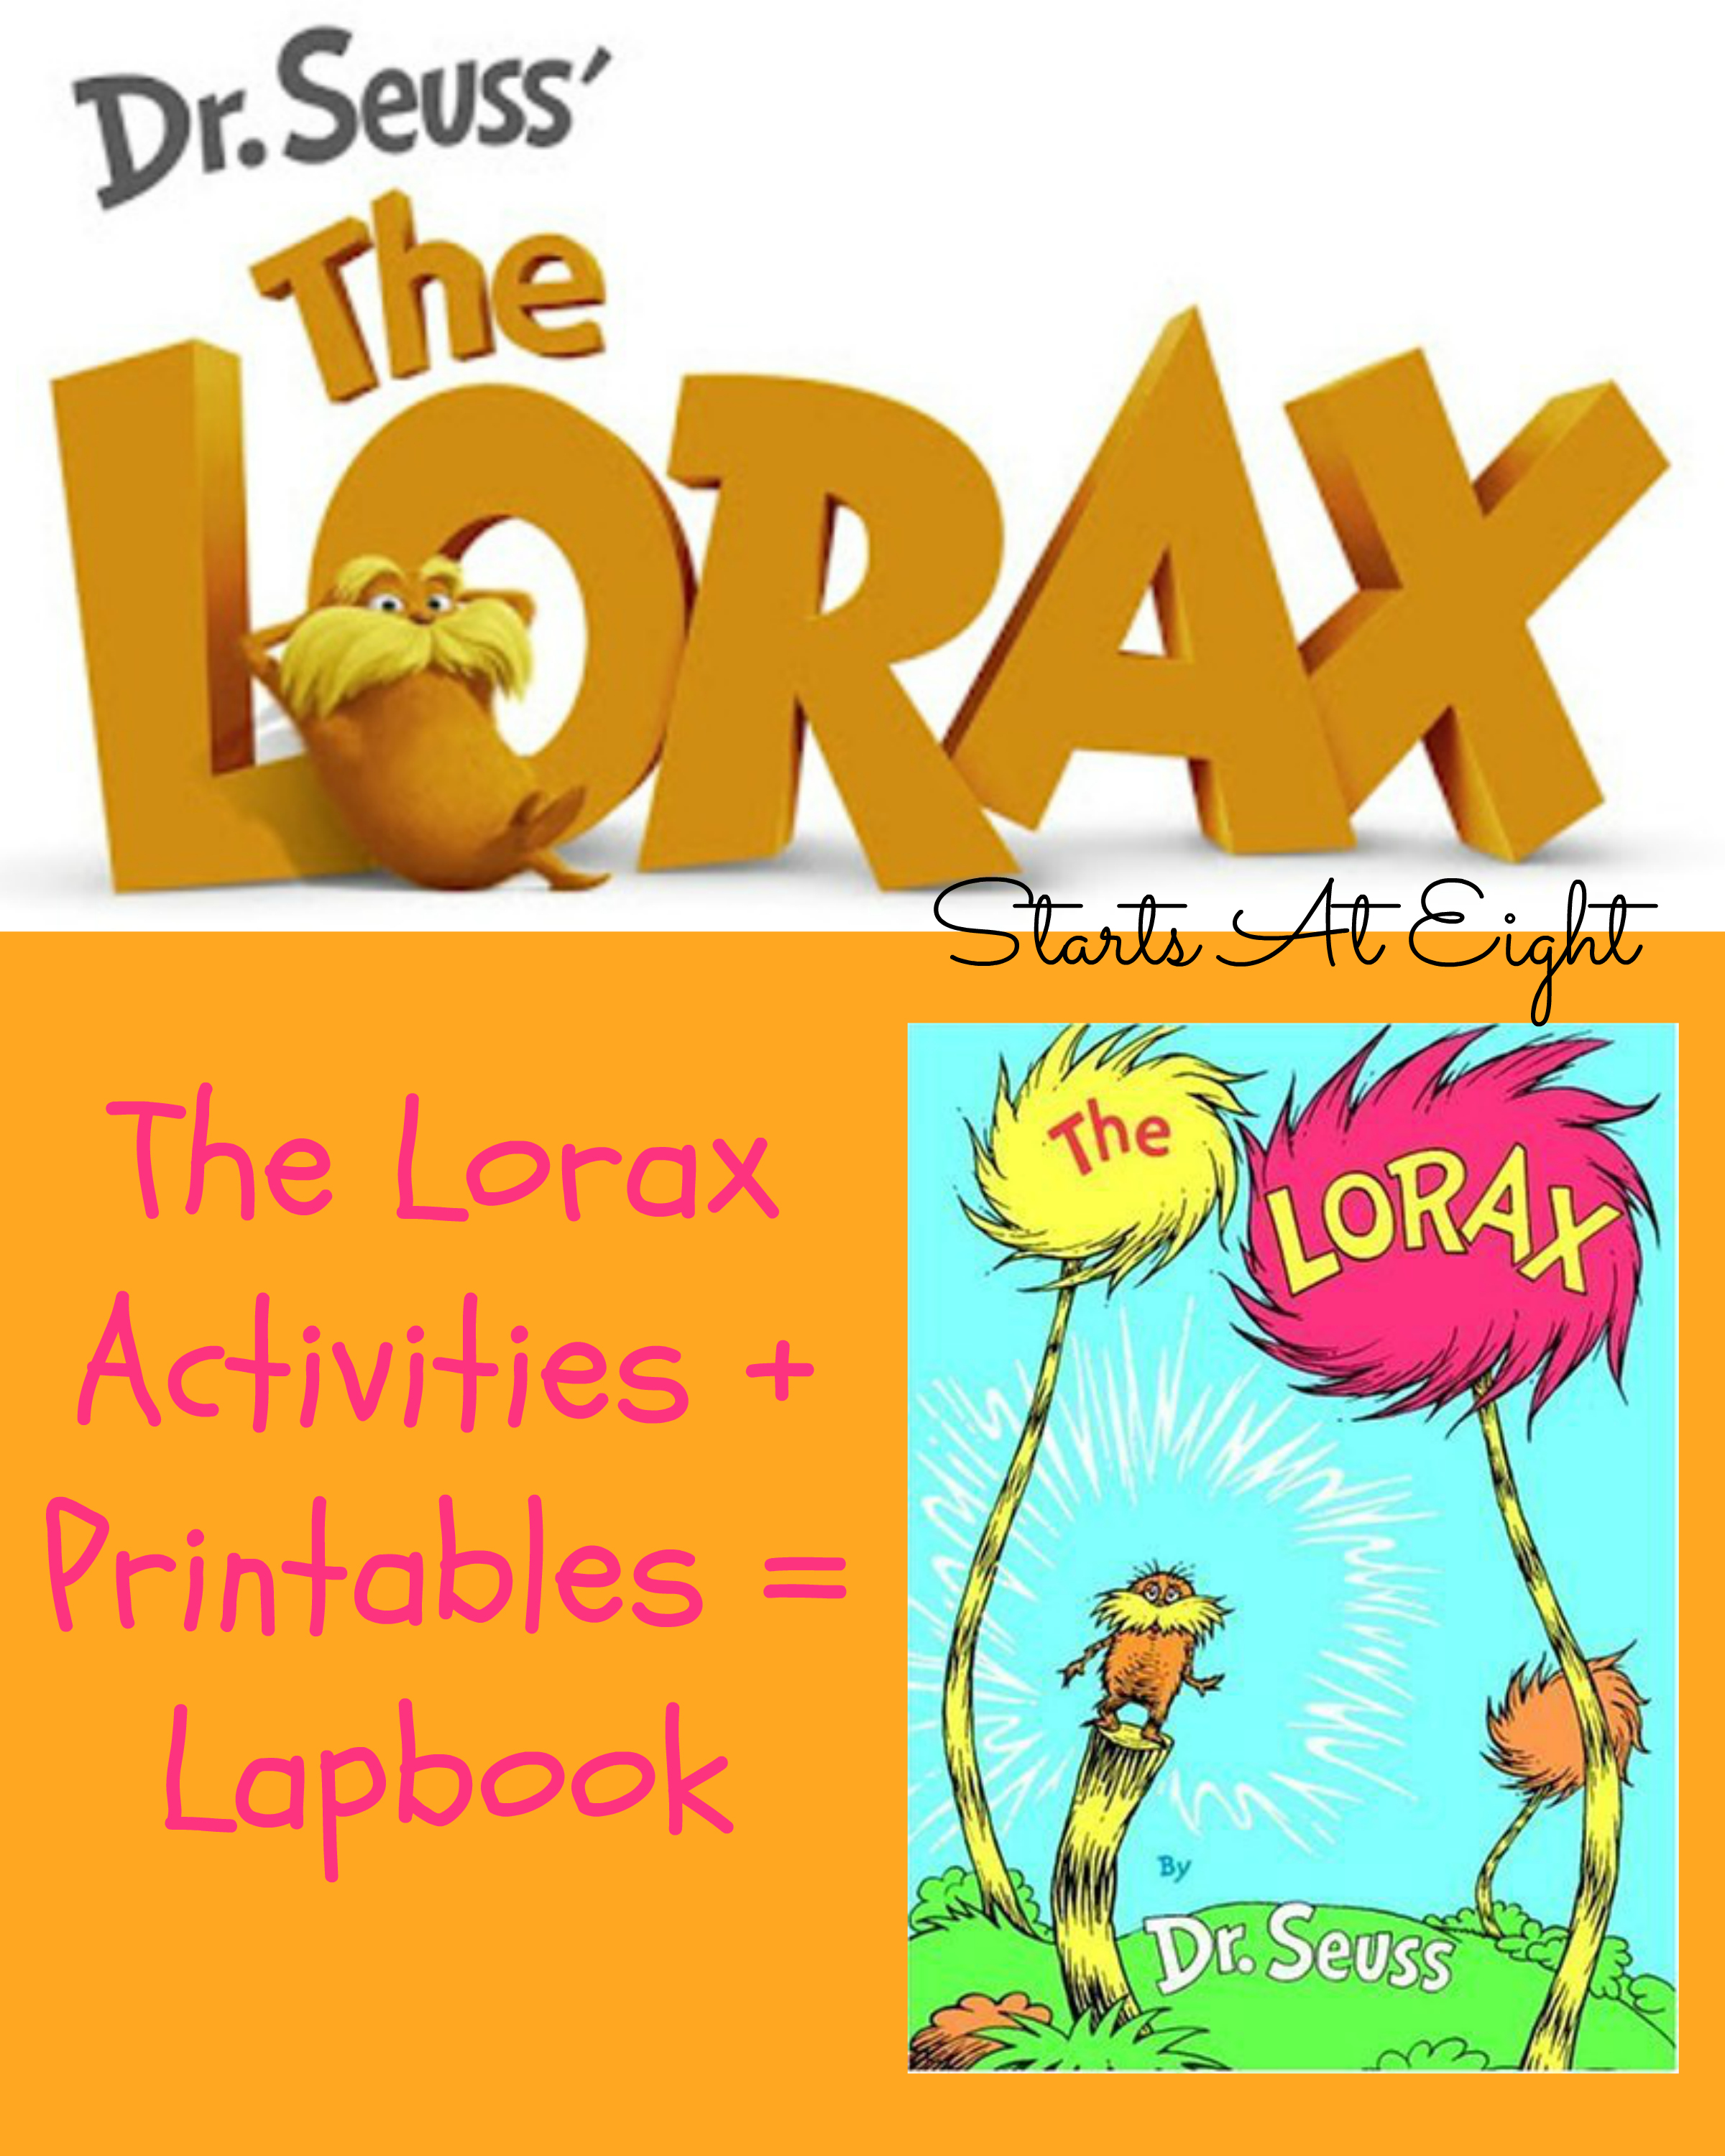 photograph relating to Lorax Printable called The Lorax Activites + Printables \u003d Lapbook - StartsAtEight